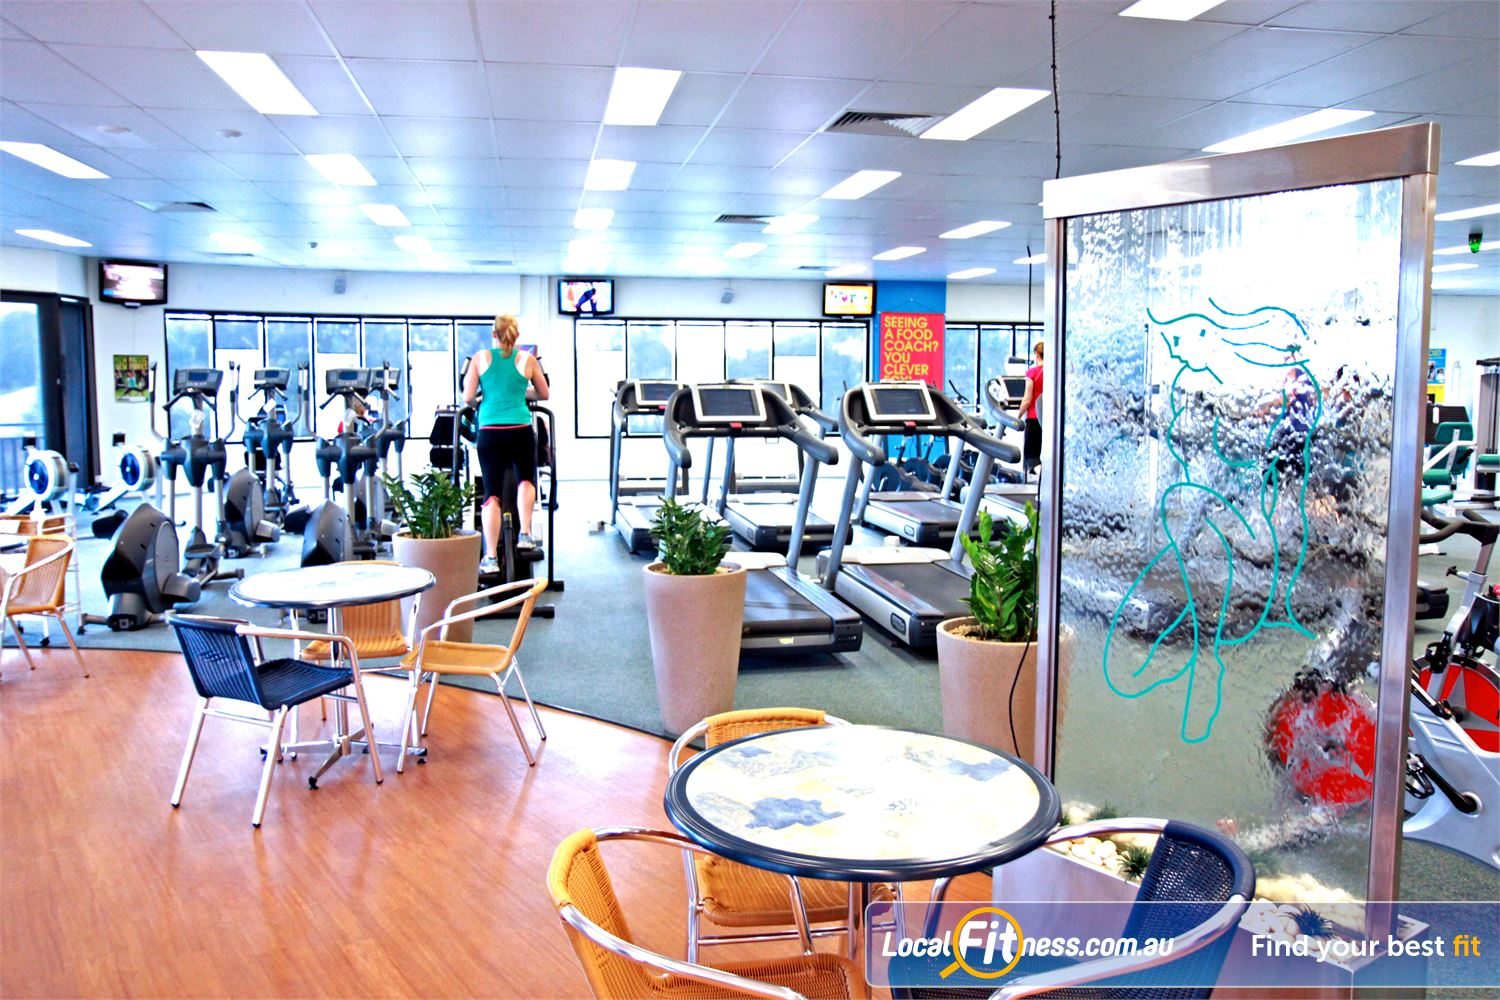 Fernwood Fitness Petrie At Fernwood Petrie, we are experts in women's fitness.